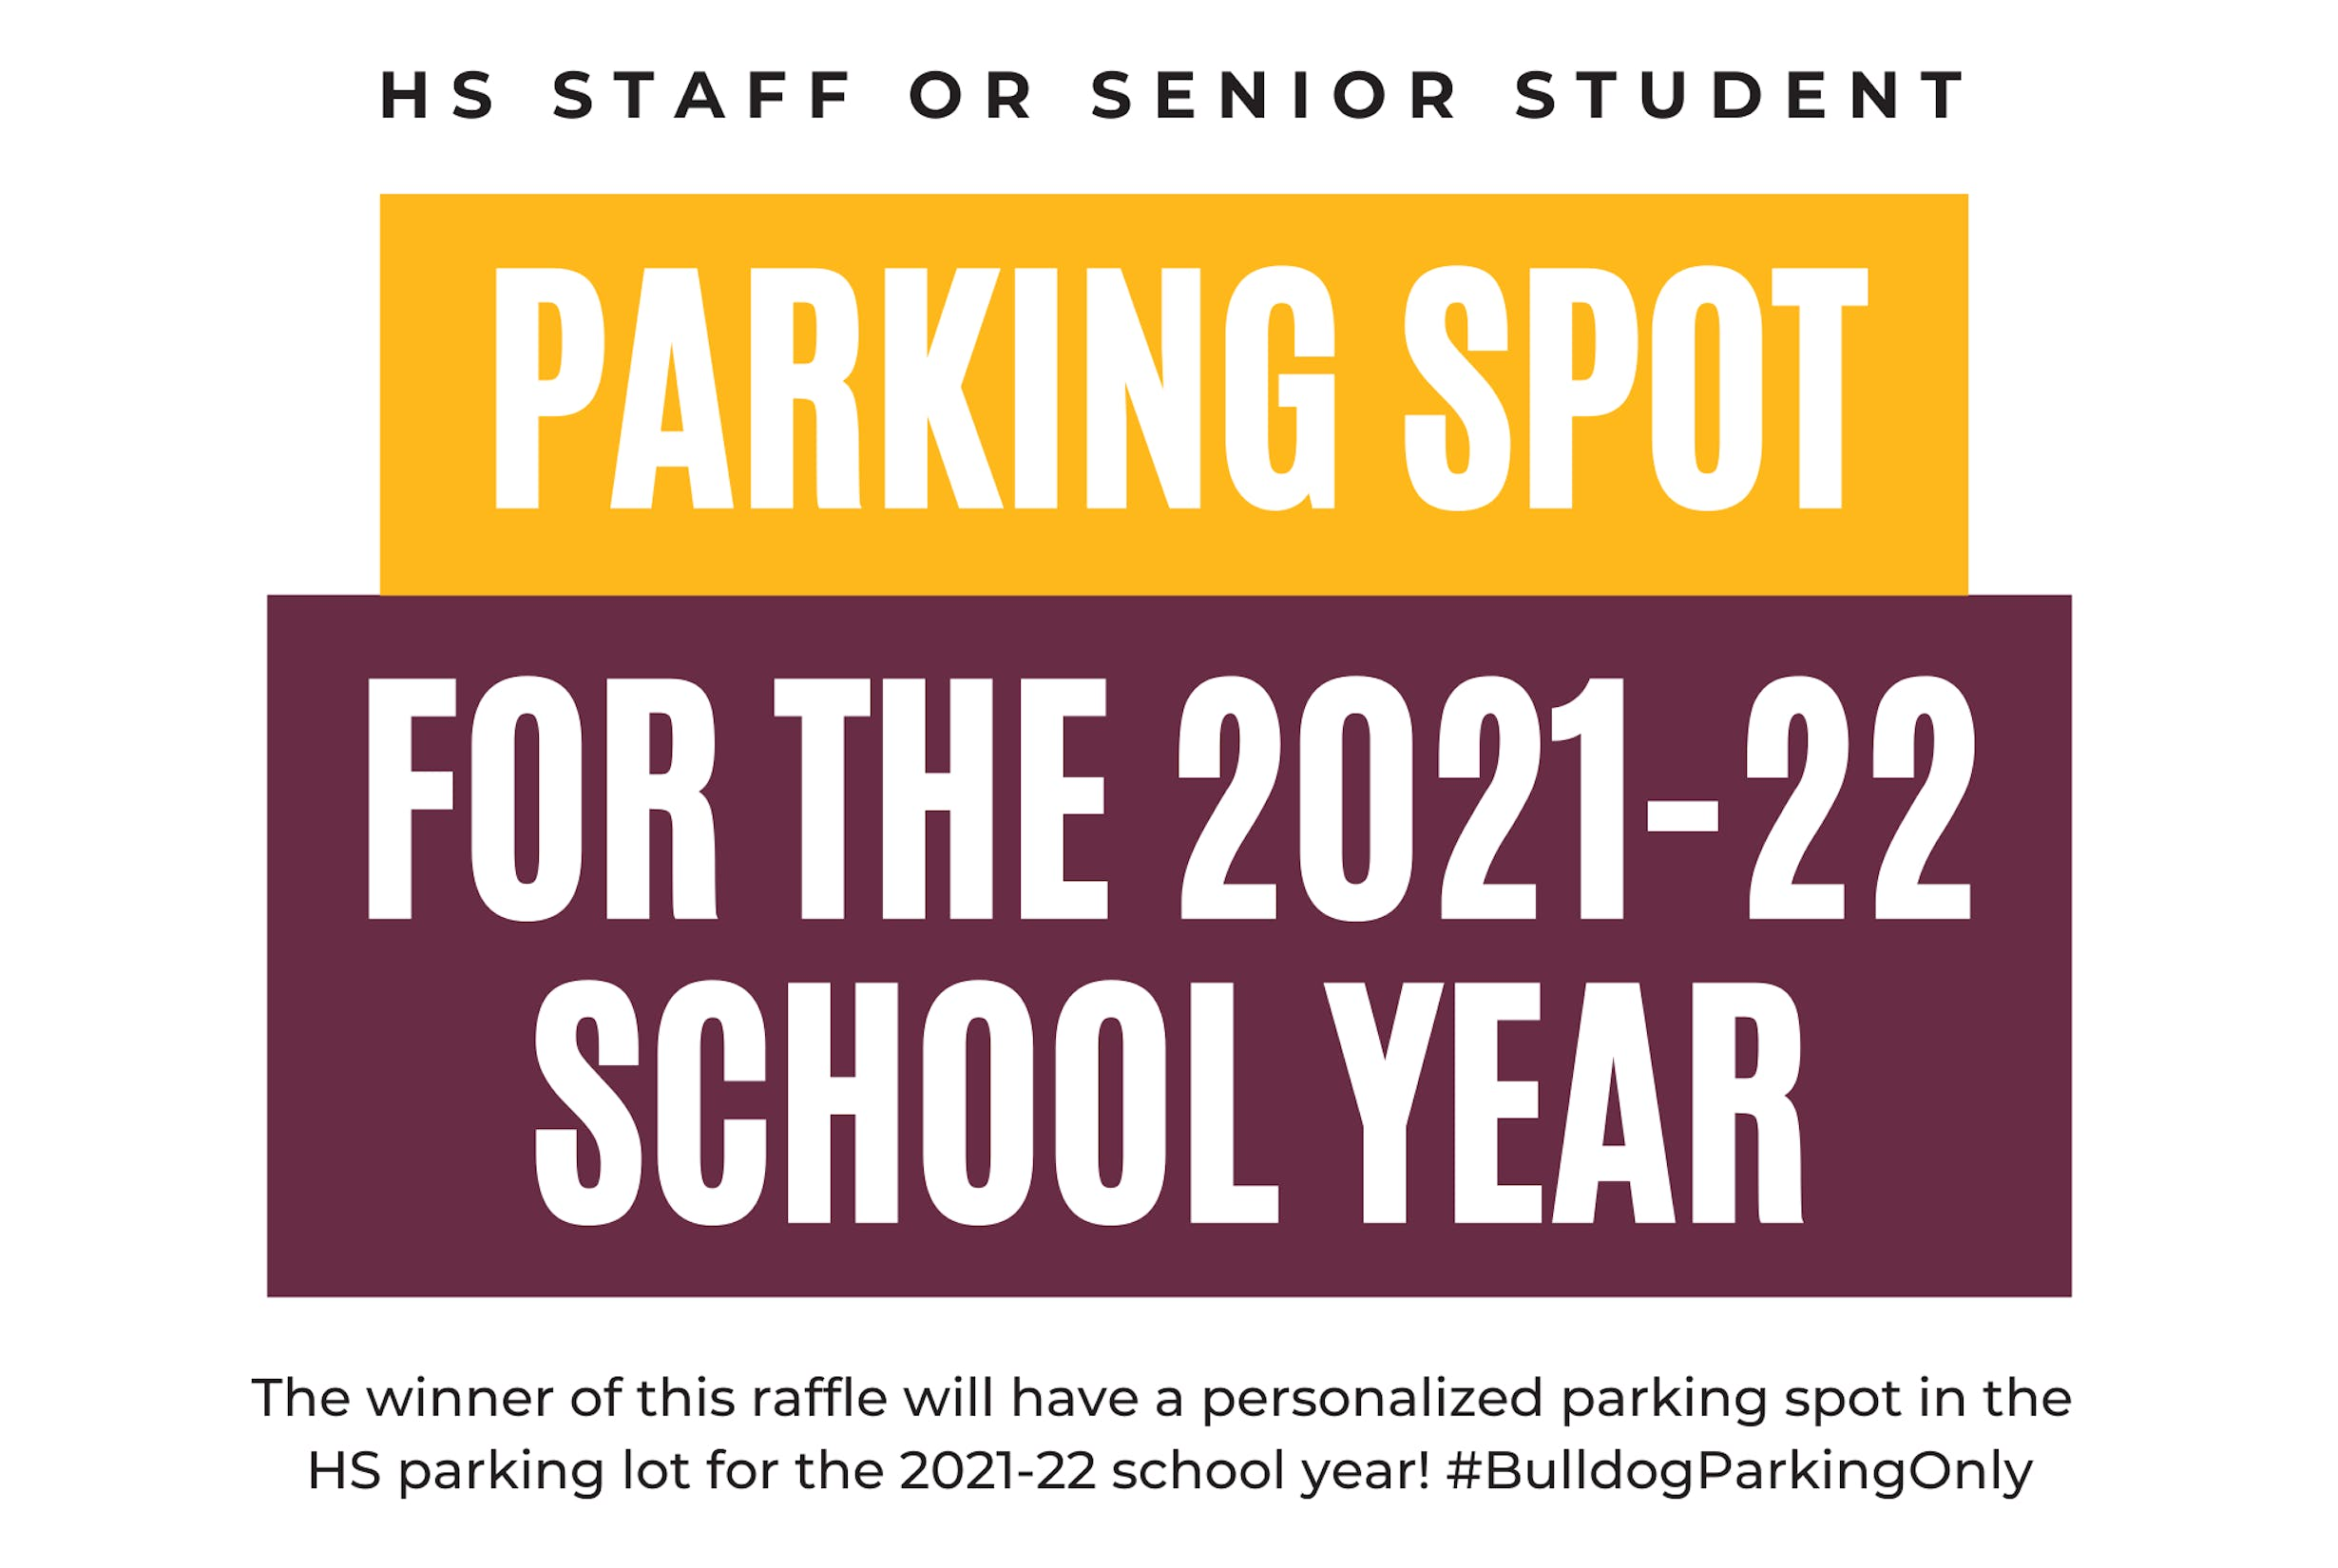 HS or Senior Staff Parking Spot for the 2021-2022 School Year